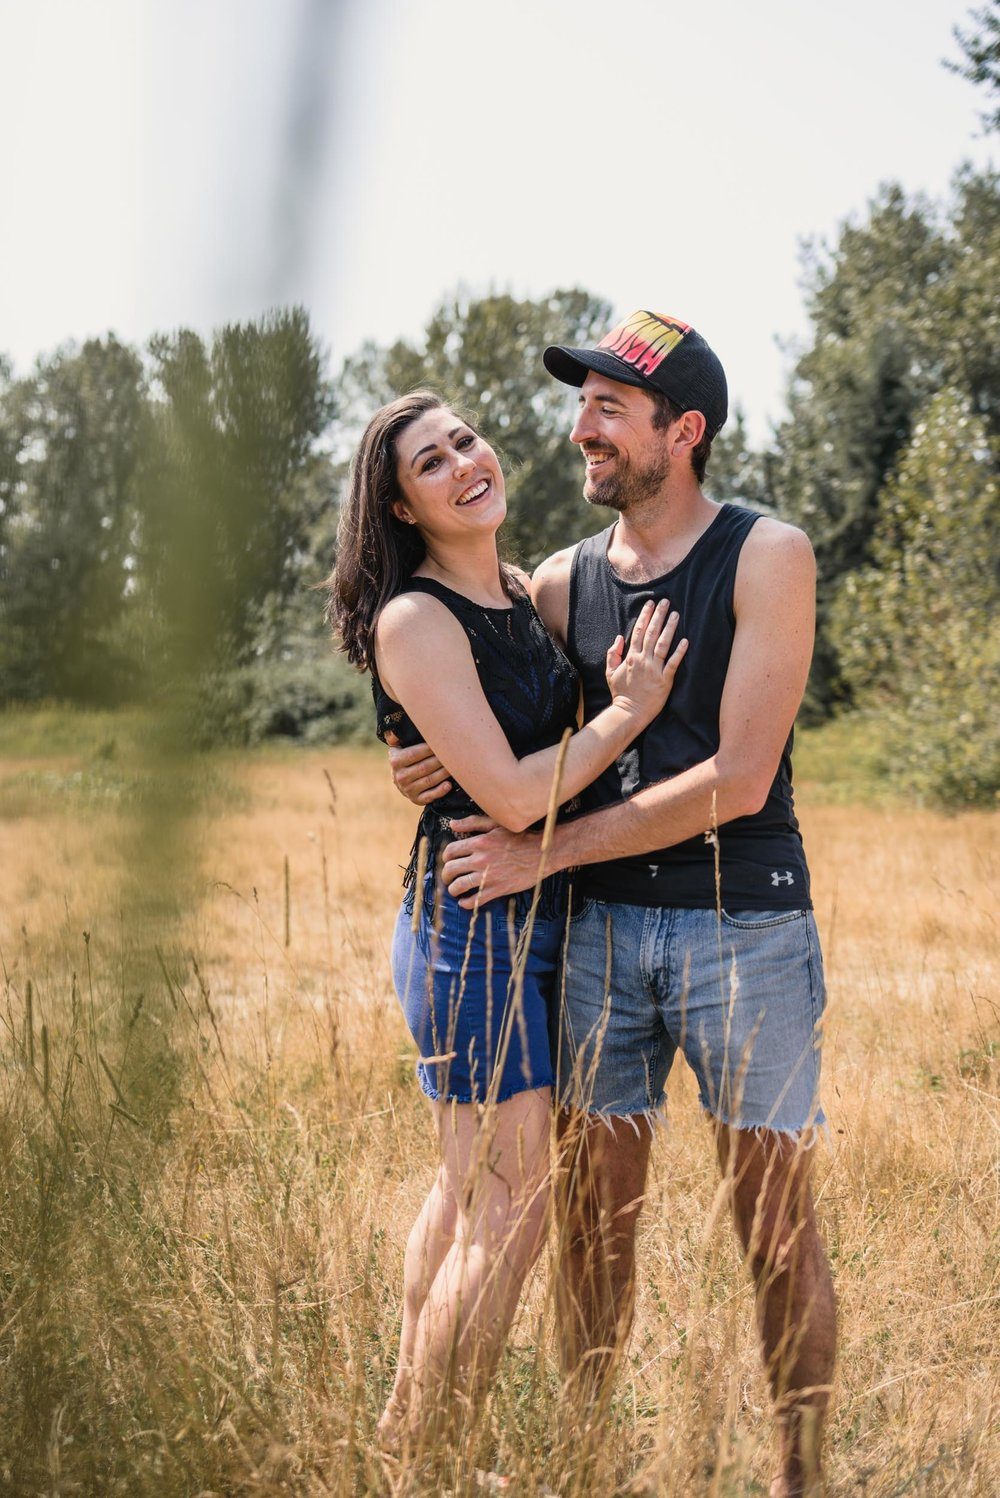 Couple hugging and smiling in field